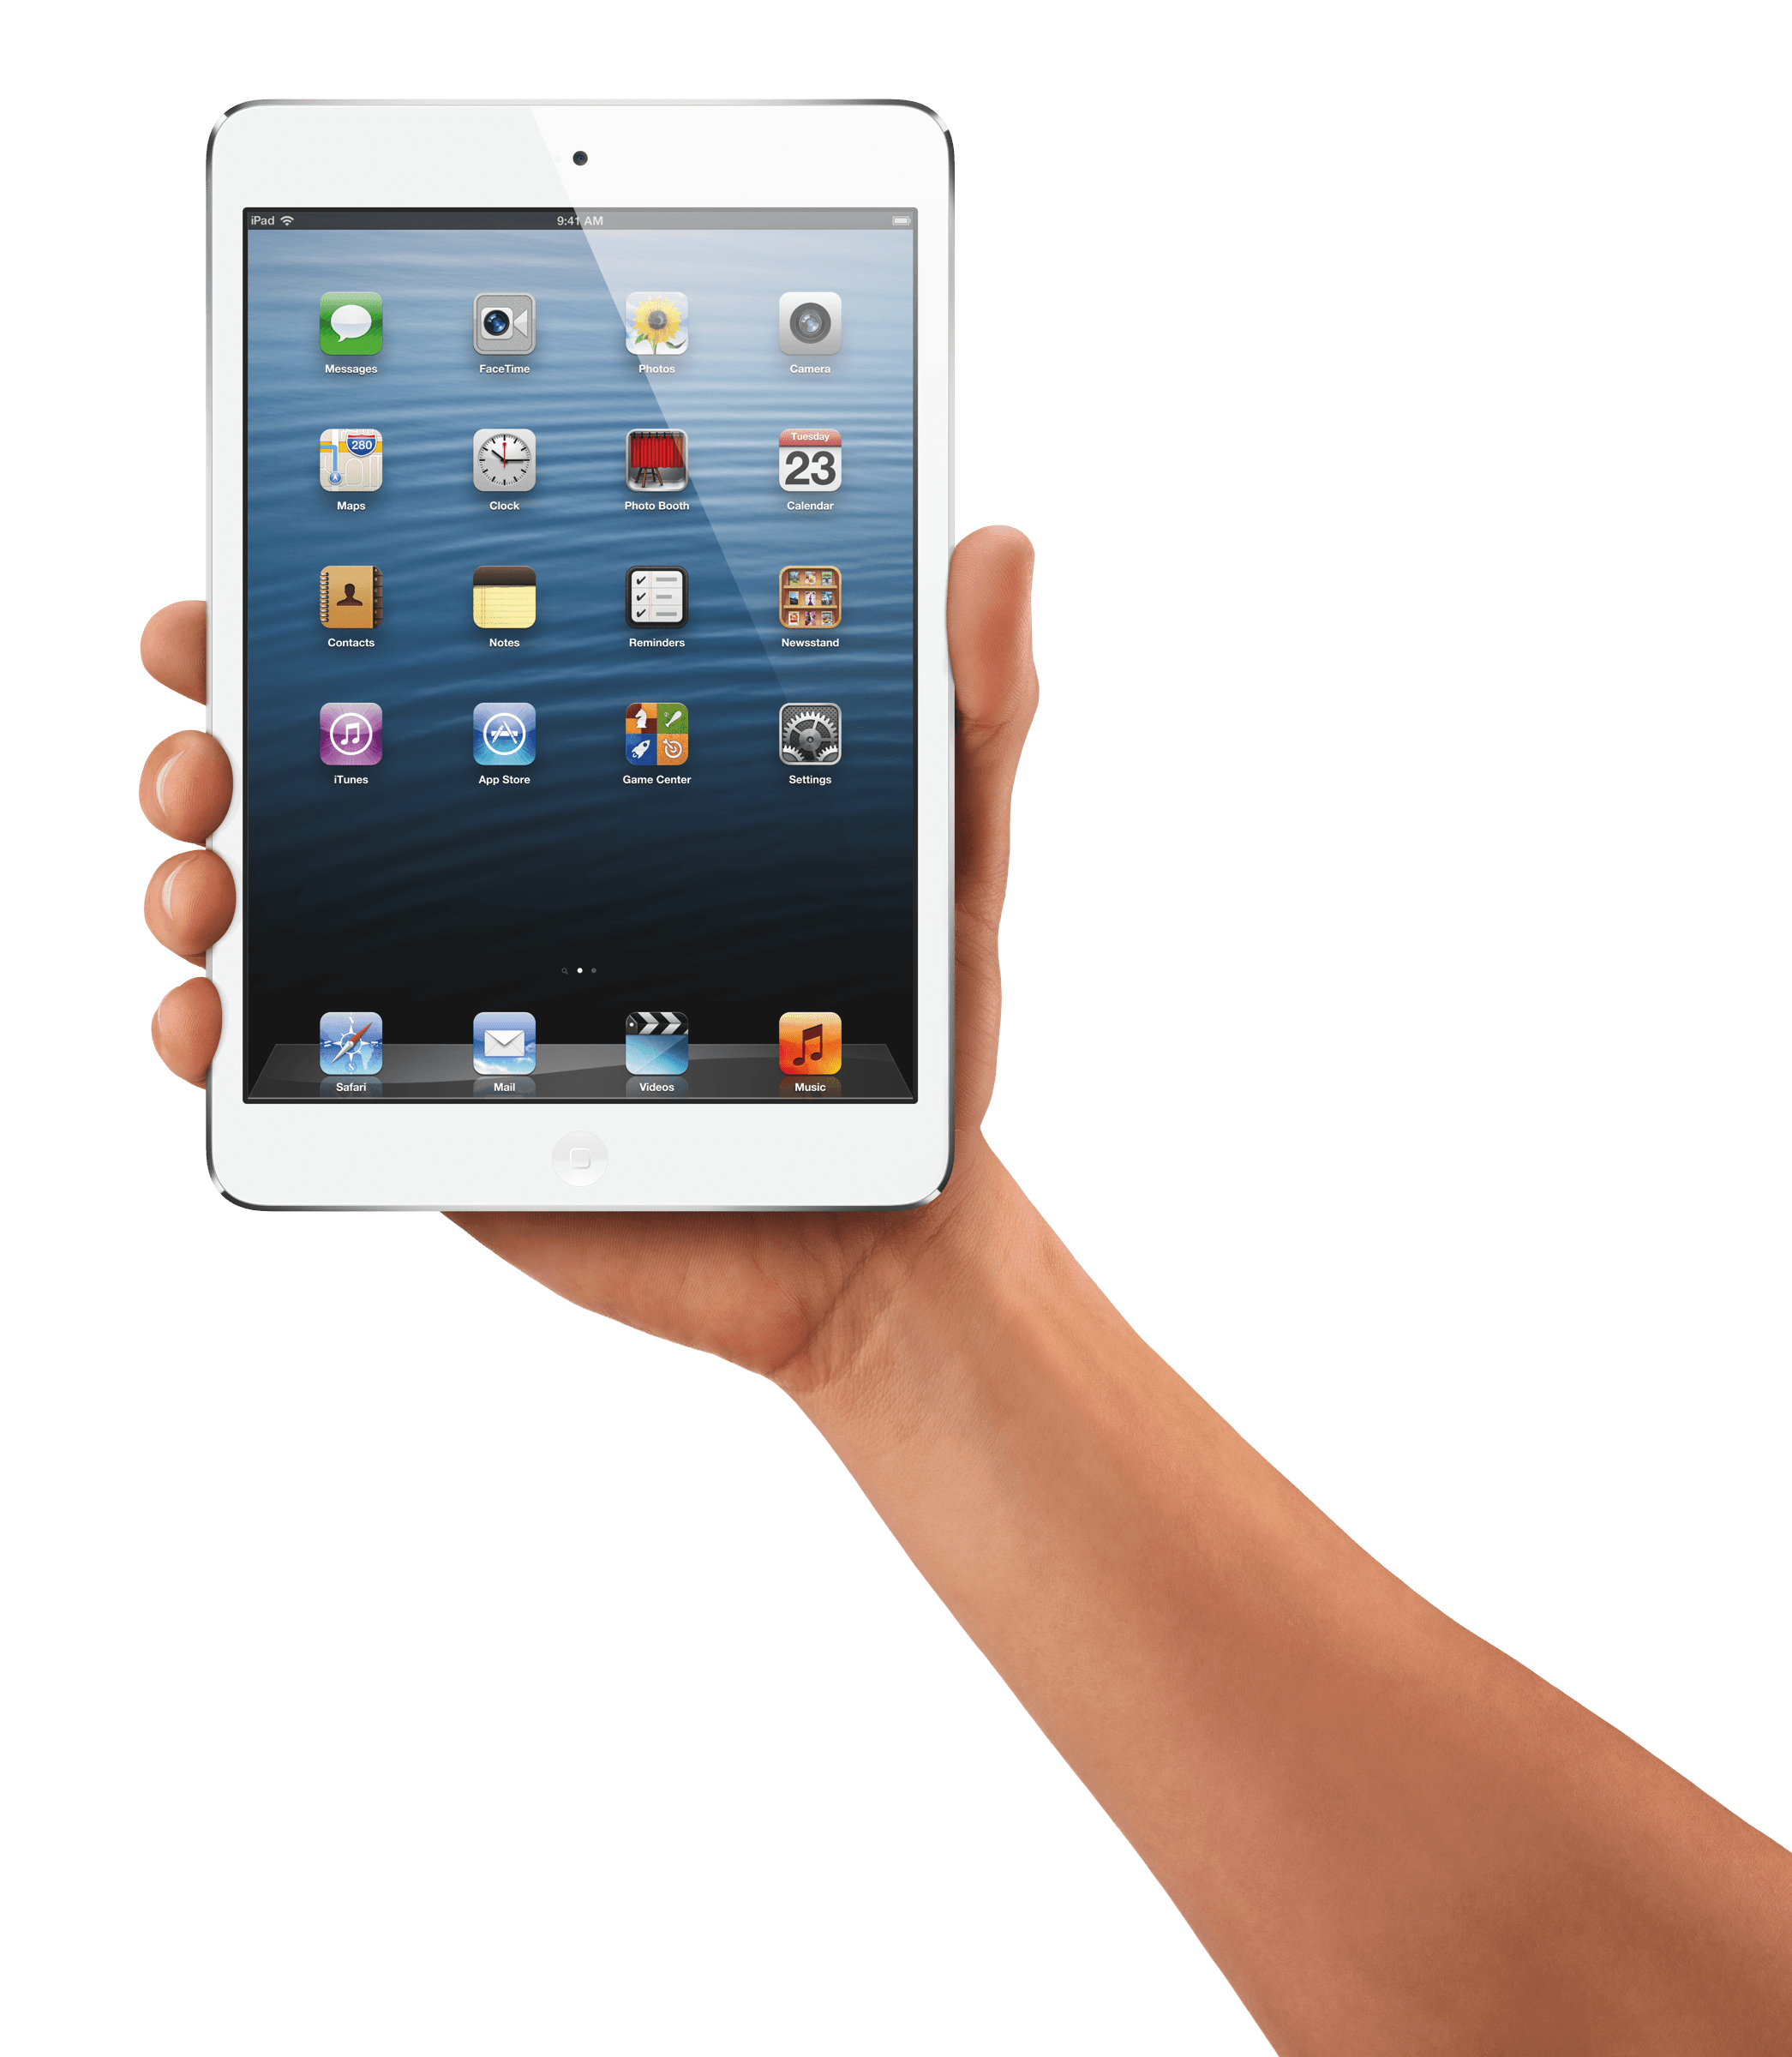 Hand holding ipad clipart graphic free download Hand Holding Ipad Tablet transparent PNG - StickPNG graphic free download